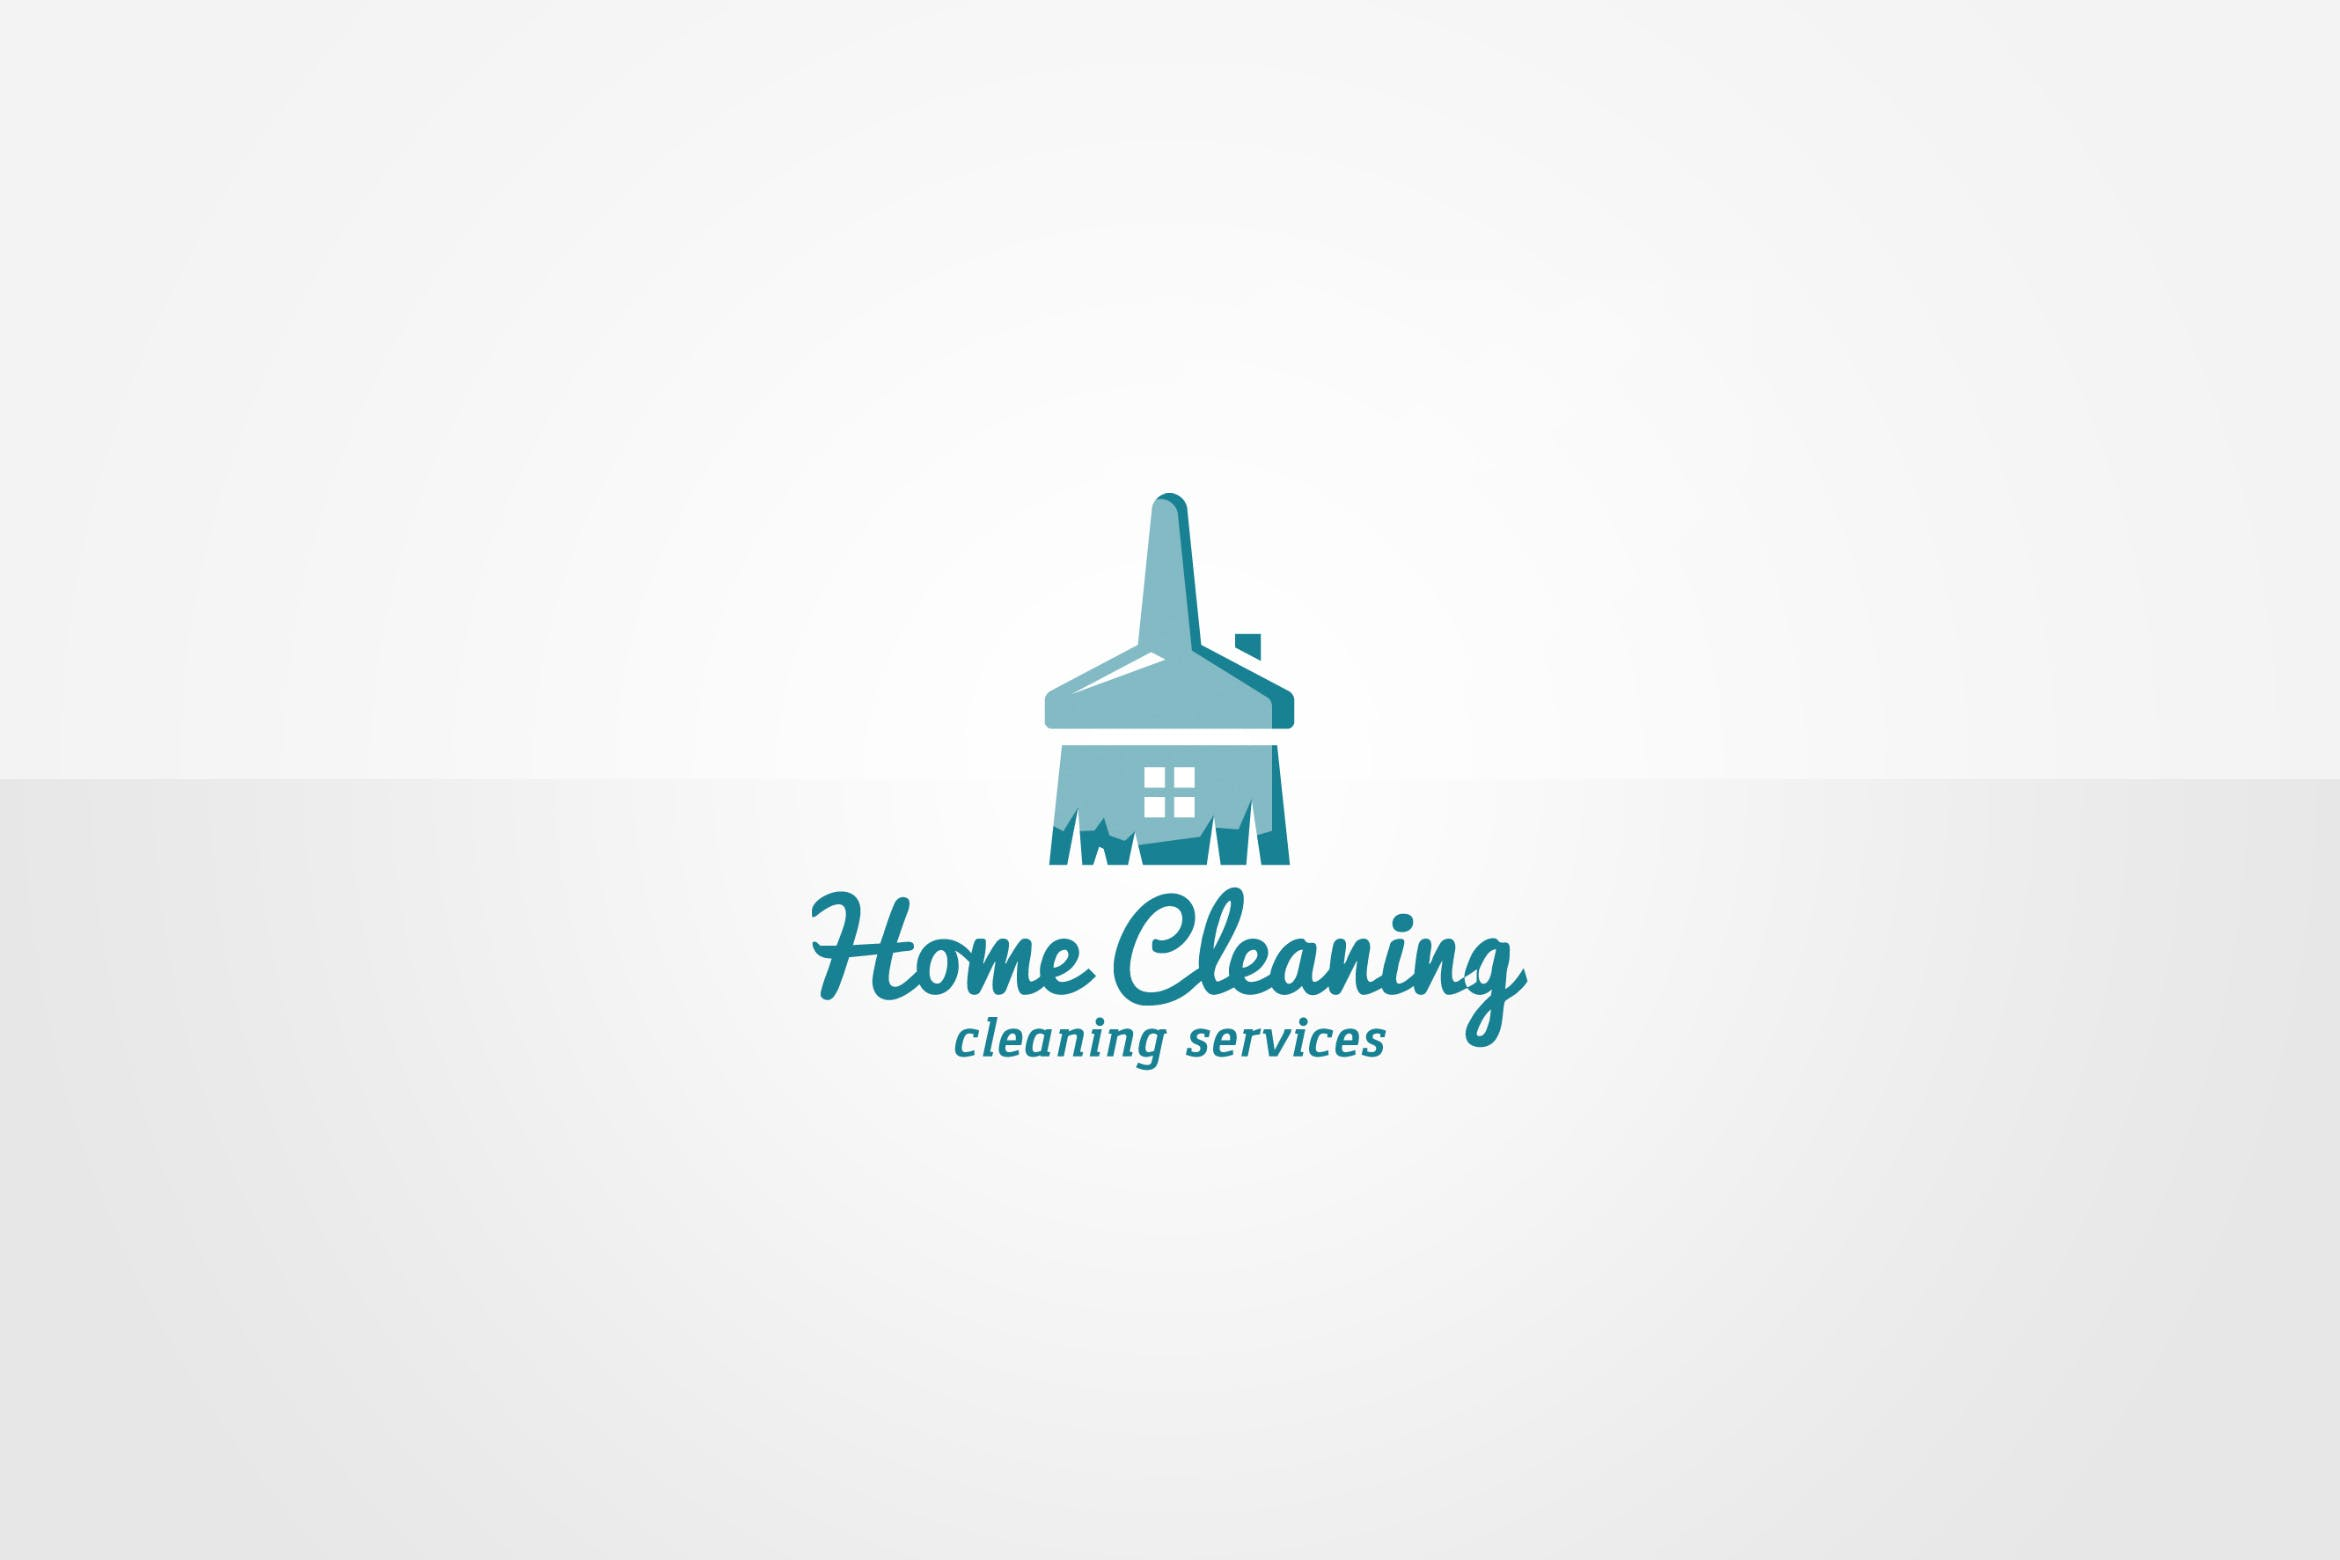 House Cleaning Logo Template by floringheorghe on Envato Elements.